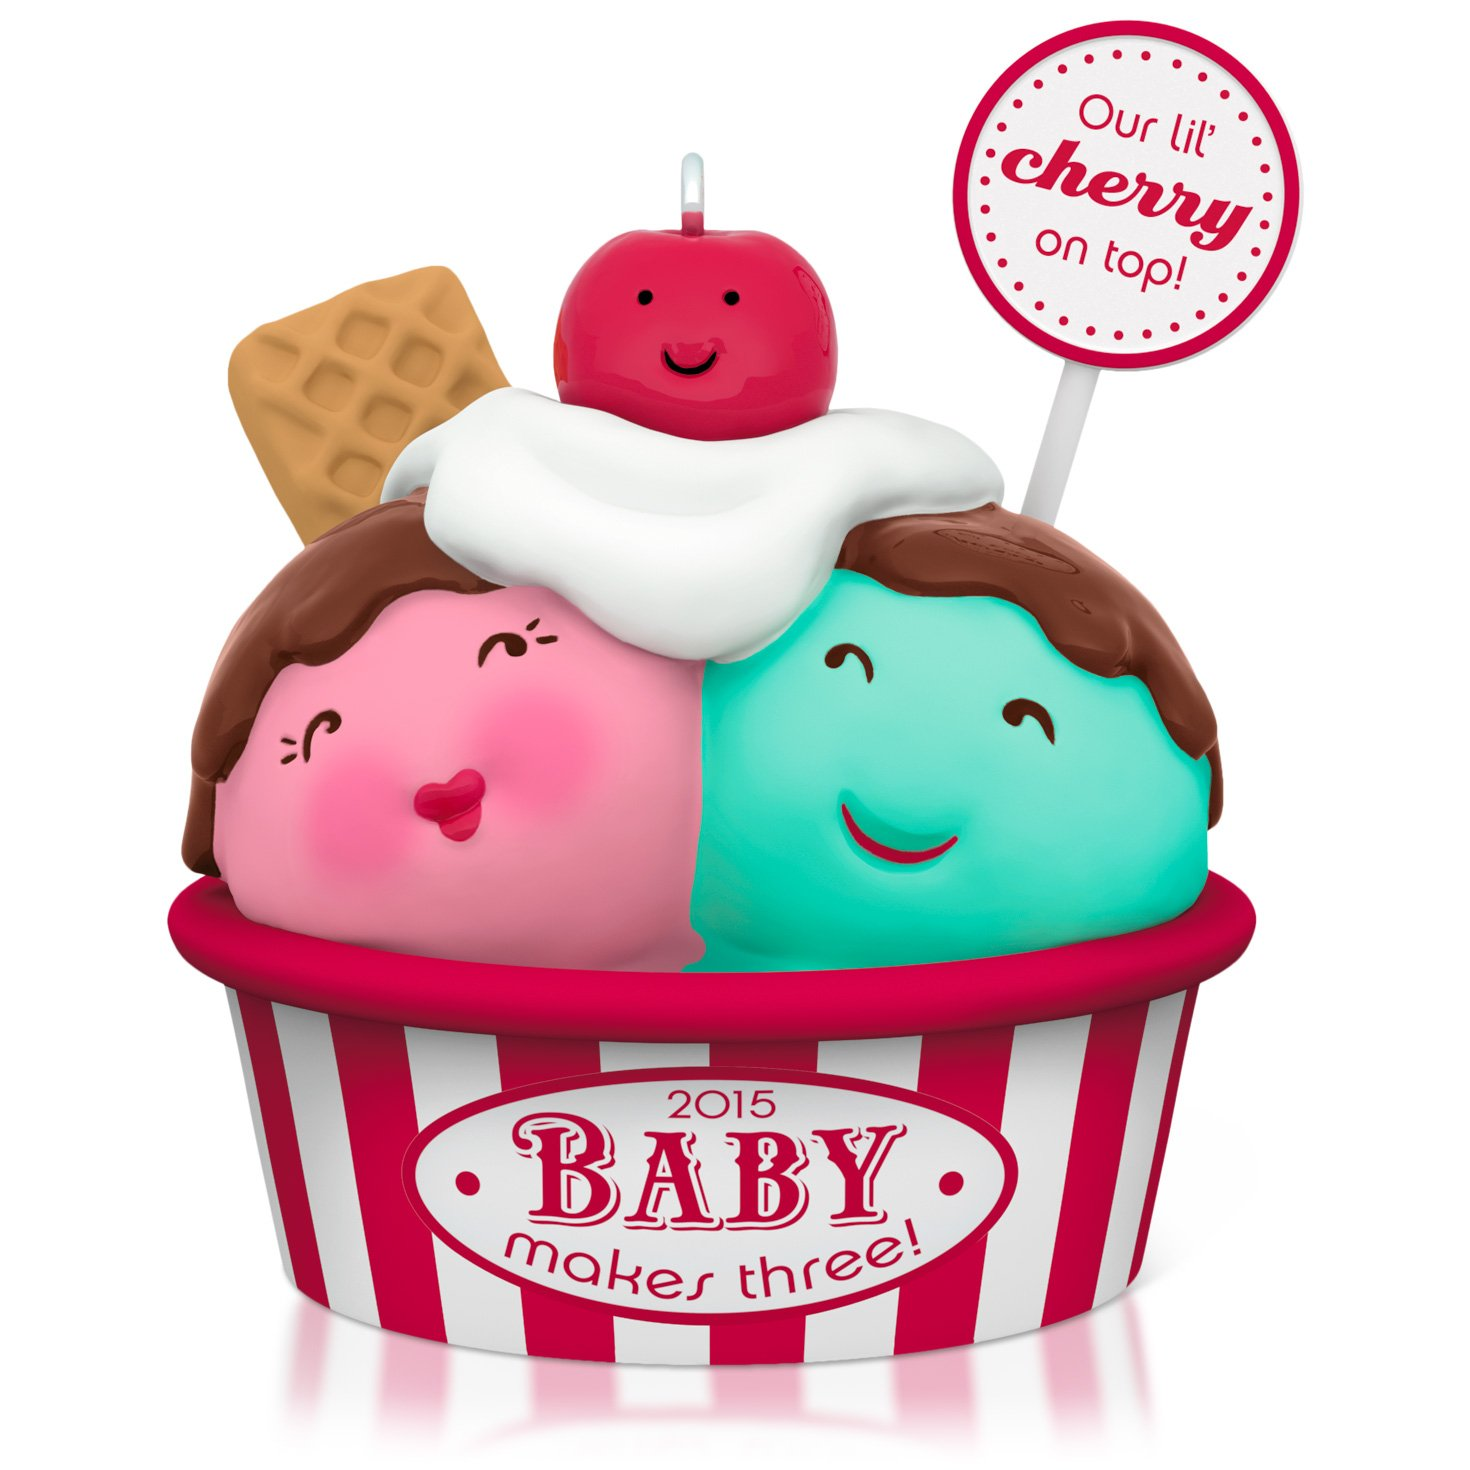 Details about Hallmark New Parents\' Baby Makes Three Ice Cream Ornament.